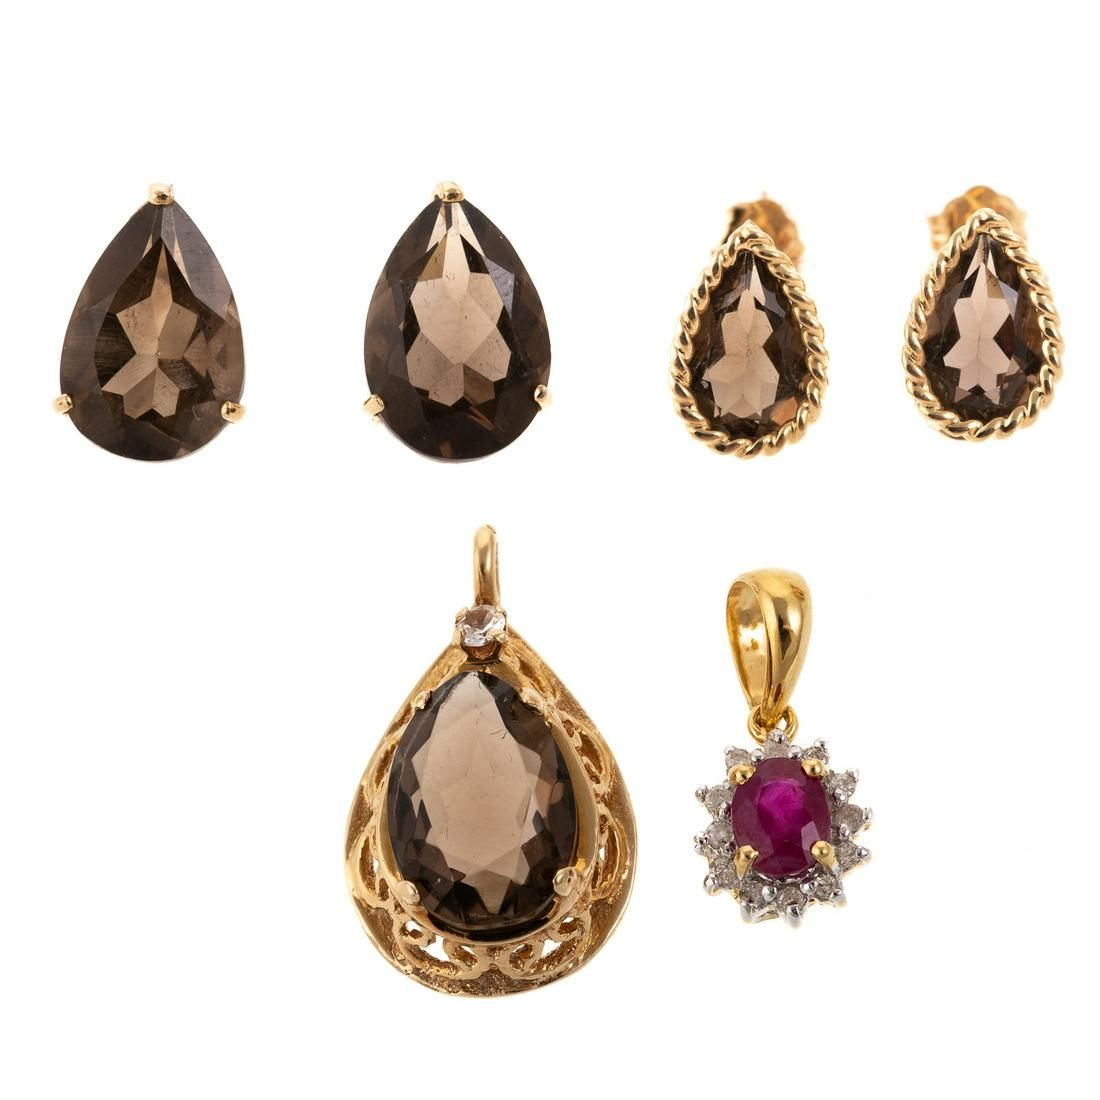 A Collection of Gemstone Jewelry in Gold